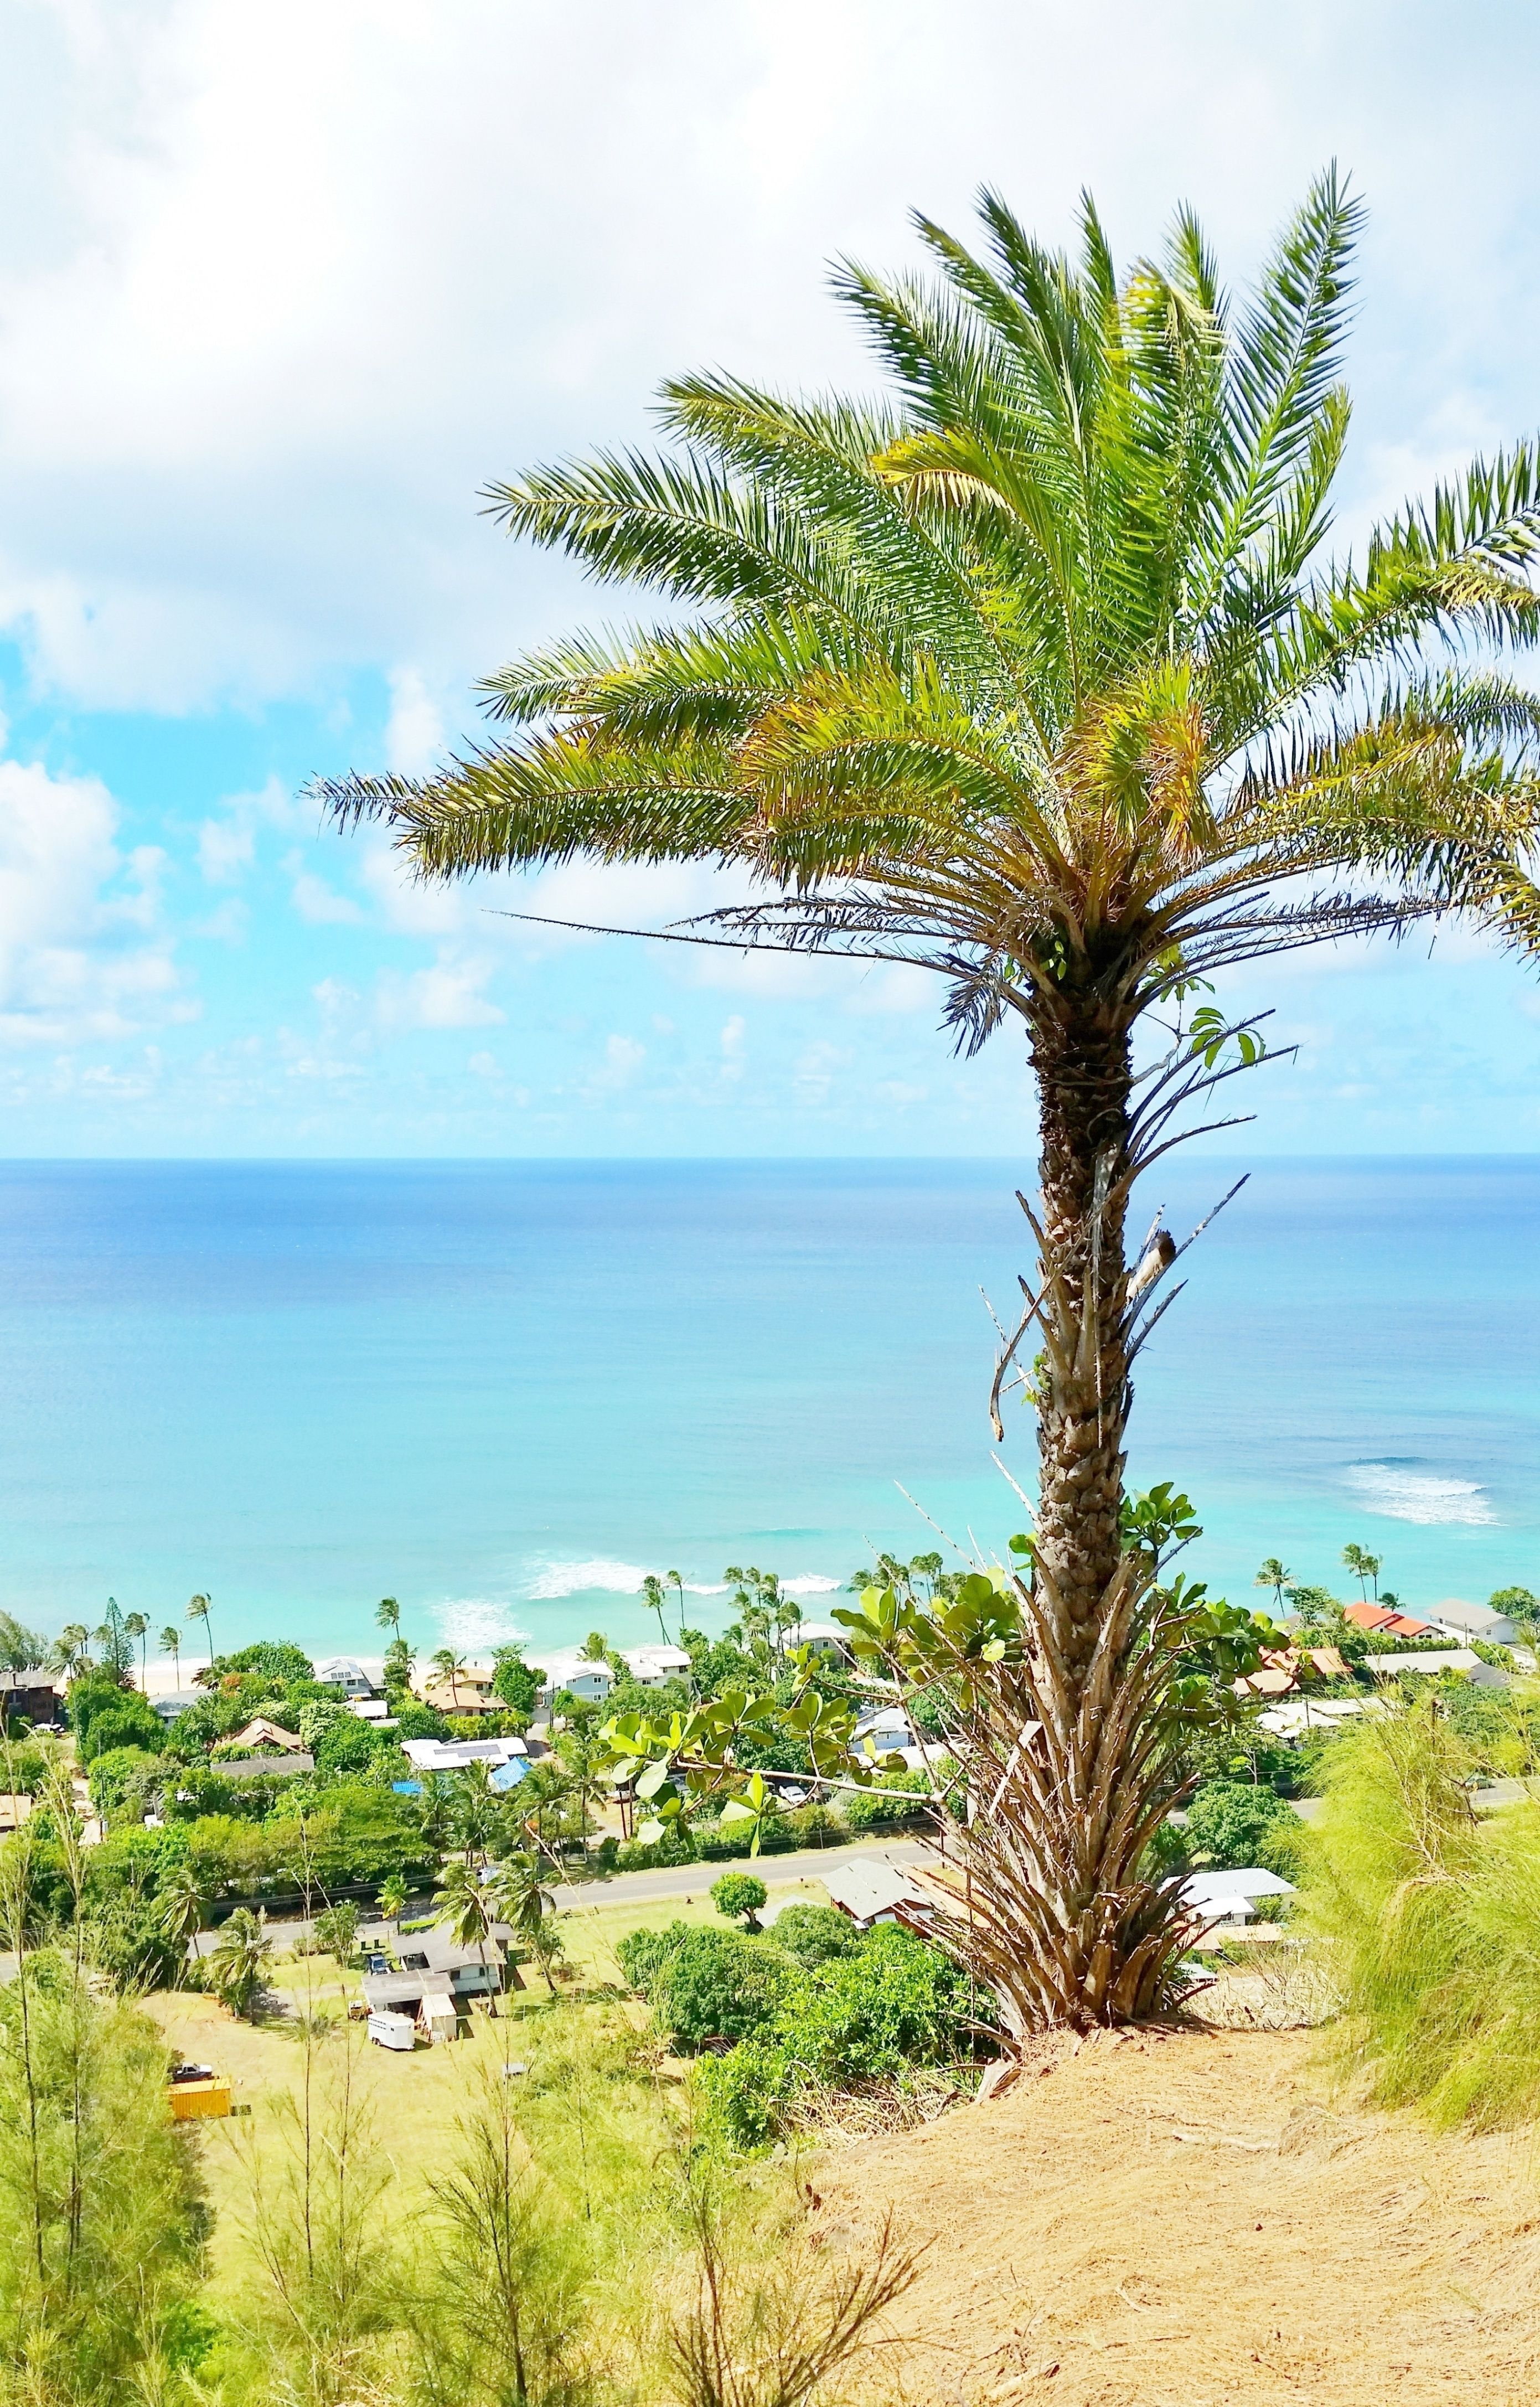 Hawaii Travel Photography Best Things To Do On North S Oahu With Ehukai Pillbox Hike Near Sunset Beach Surfing Spots And Surf Camps